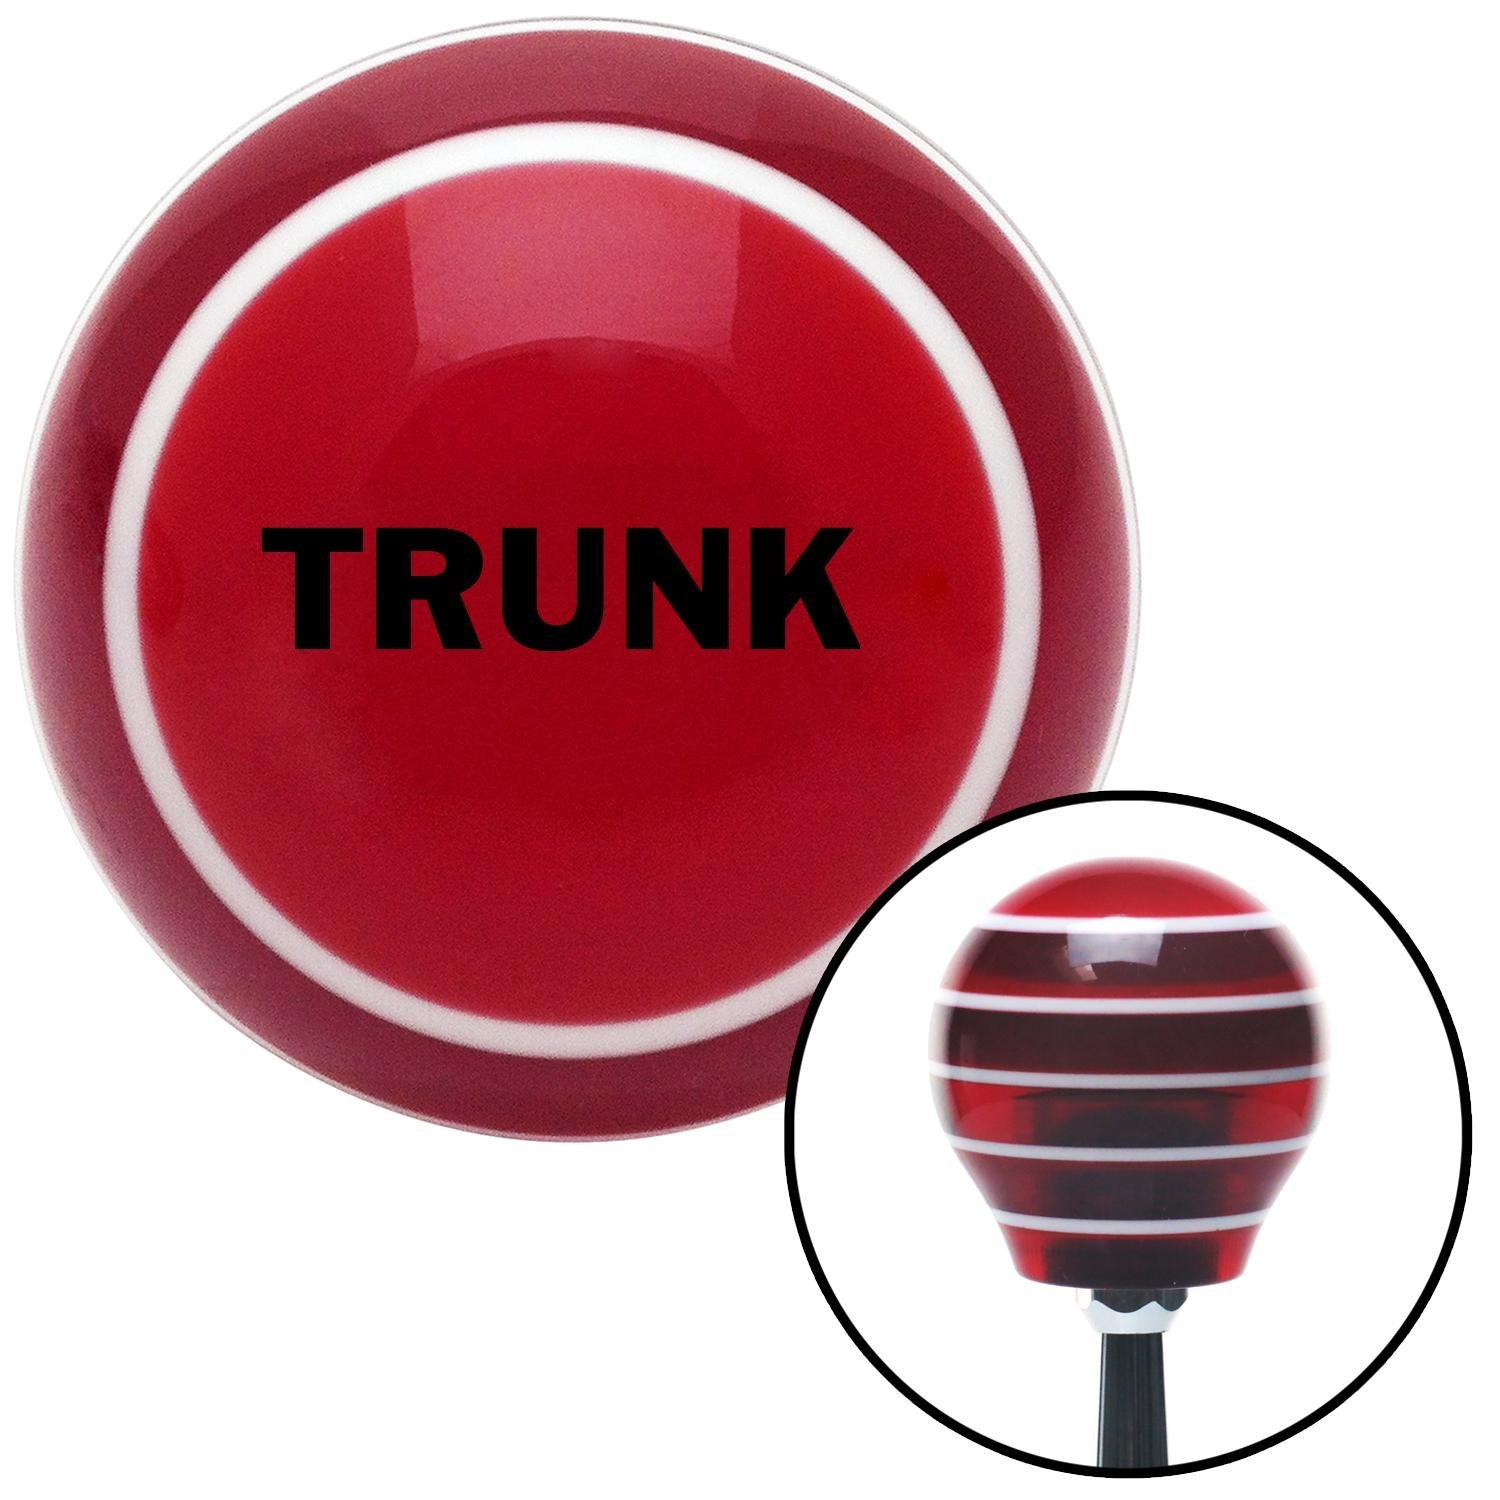 Black Trunk American Shifter 120009 Red Stripe Shift Knob with M16 x 1.5 Insert